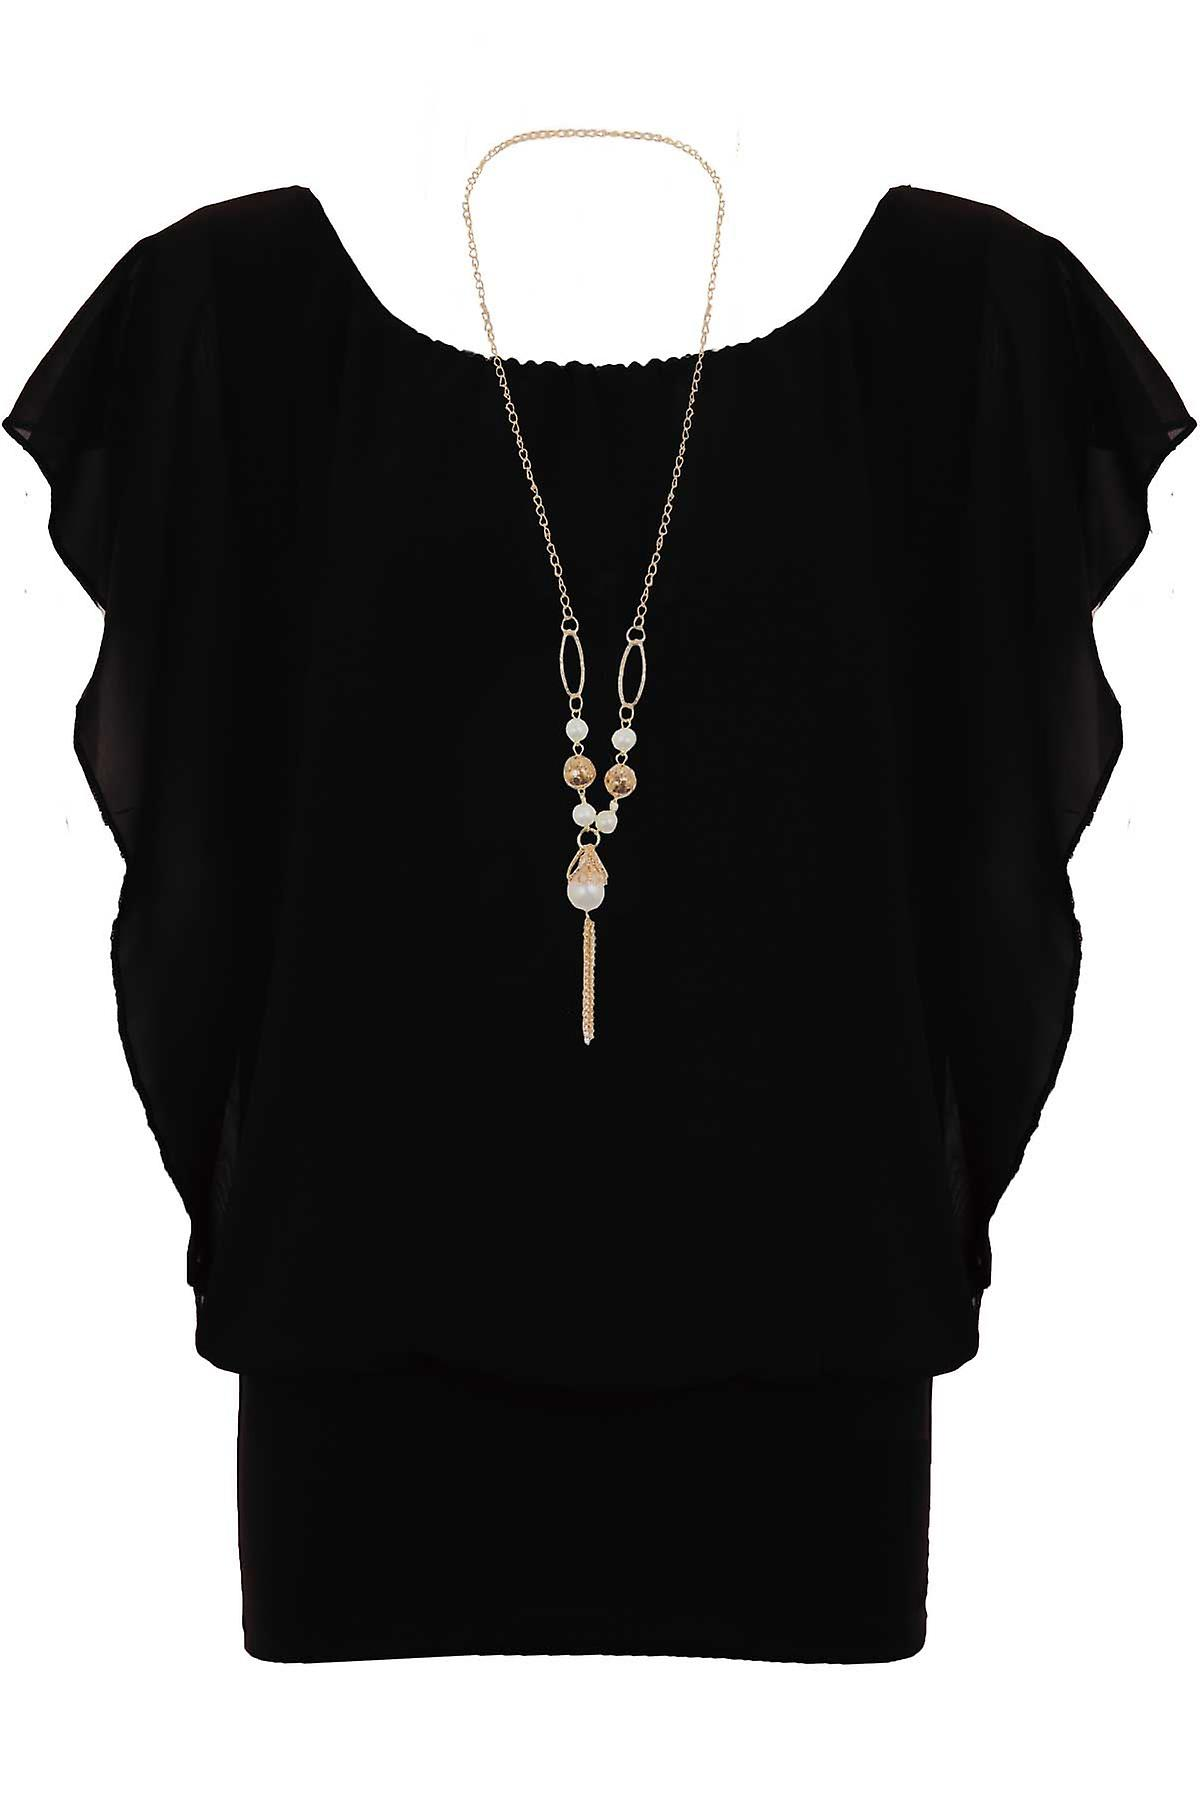 Ladies Batwing Chiffon Baggy Lined Pearl Butterfly Necklace Women's Blouse Top